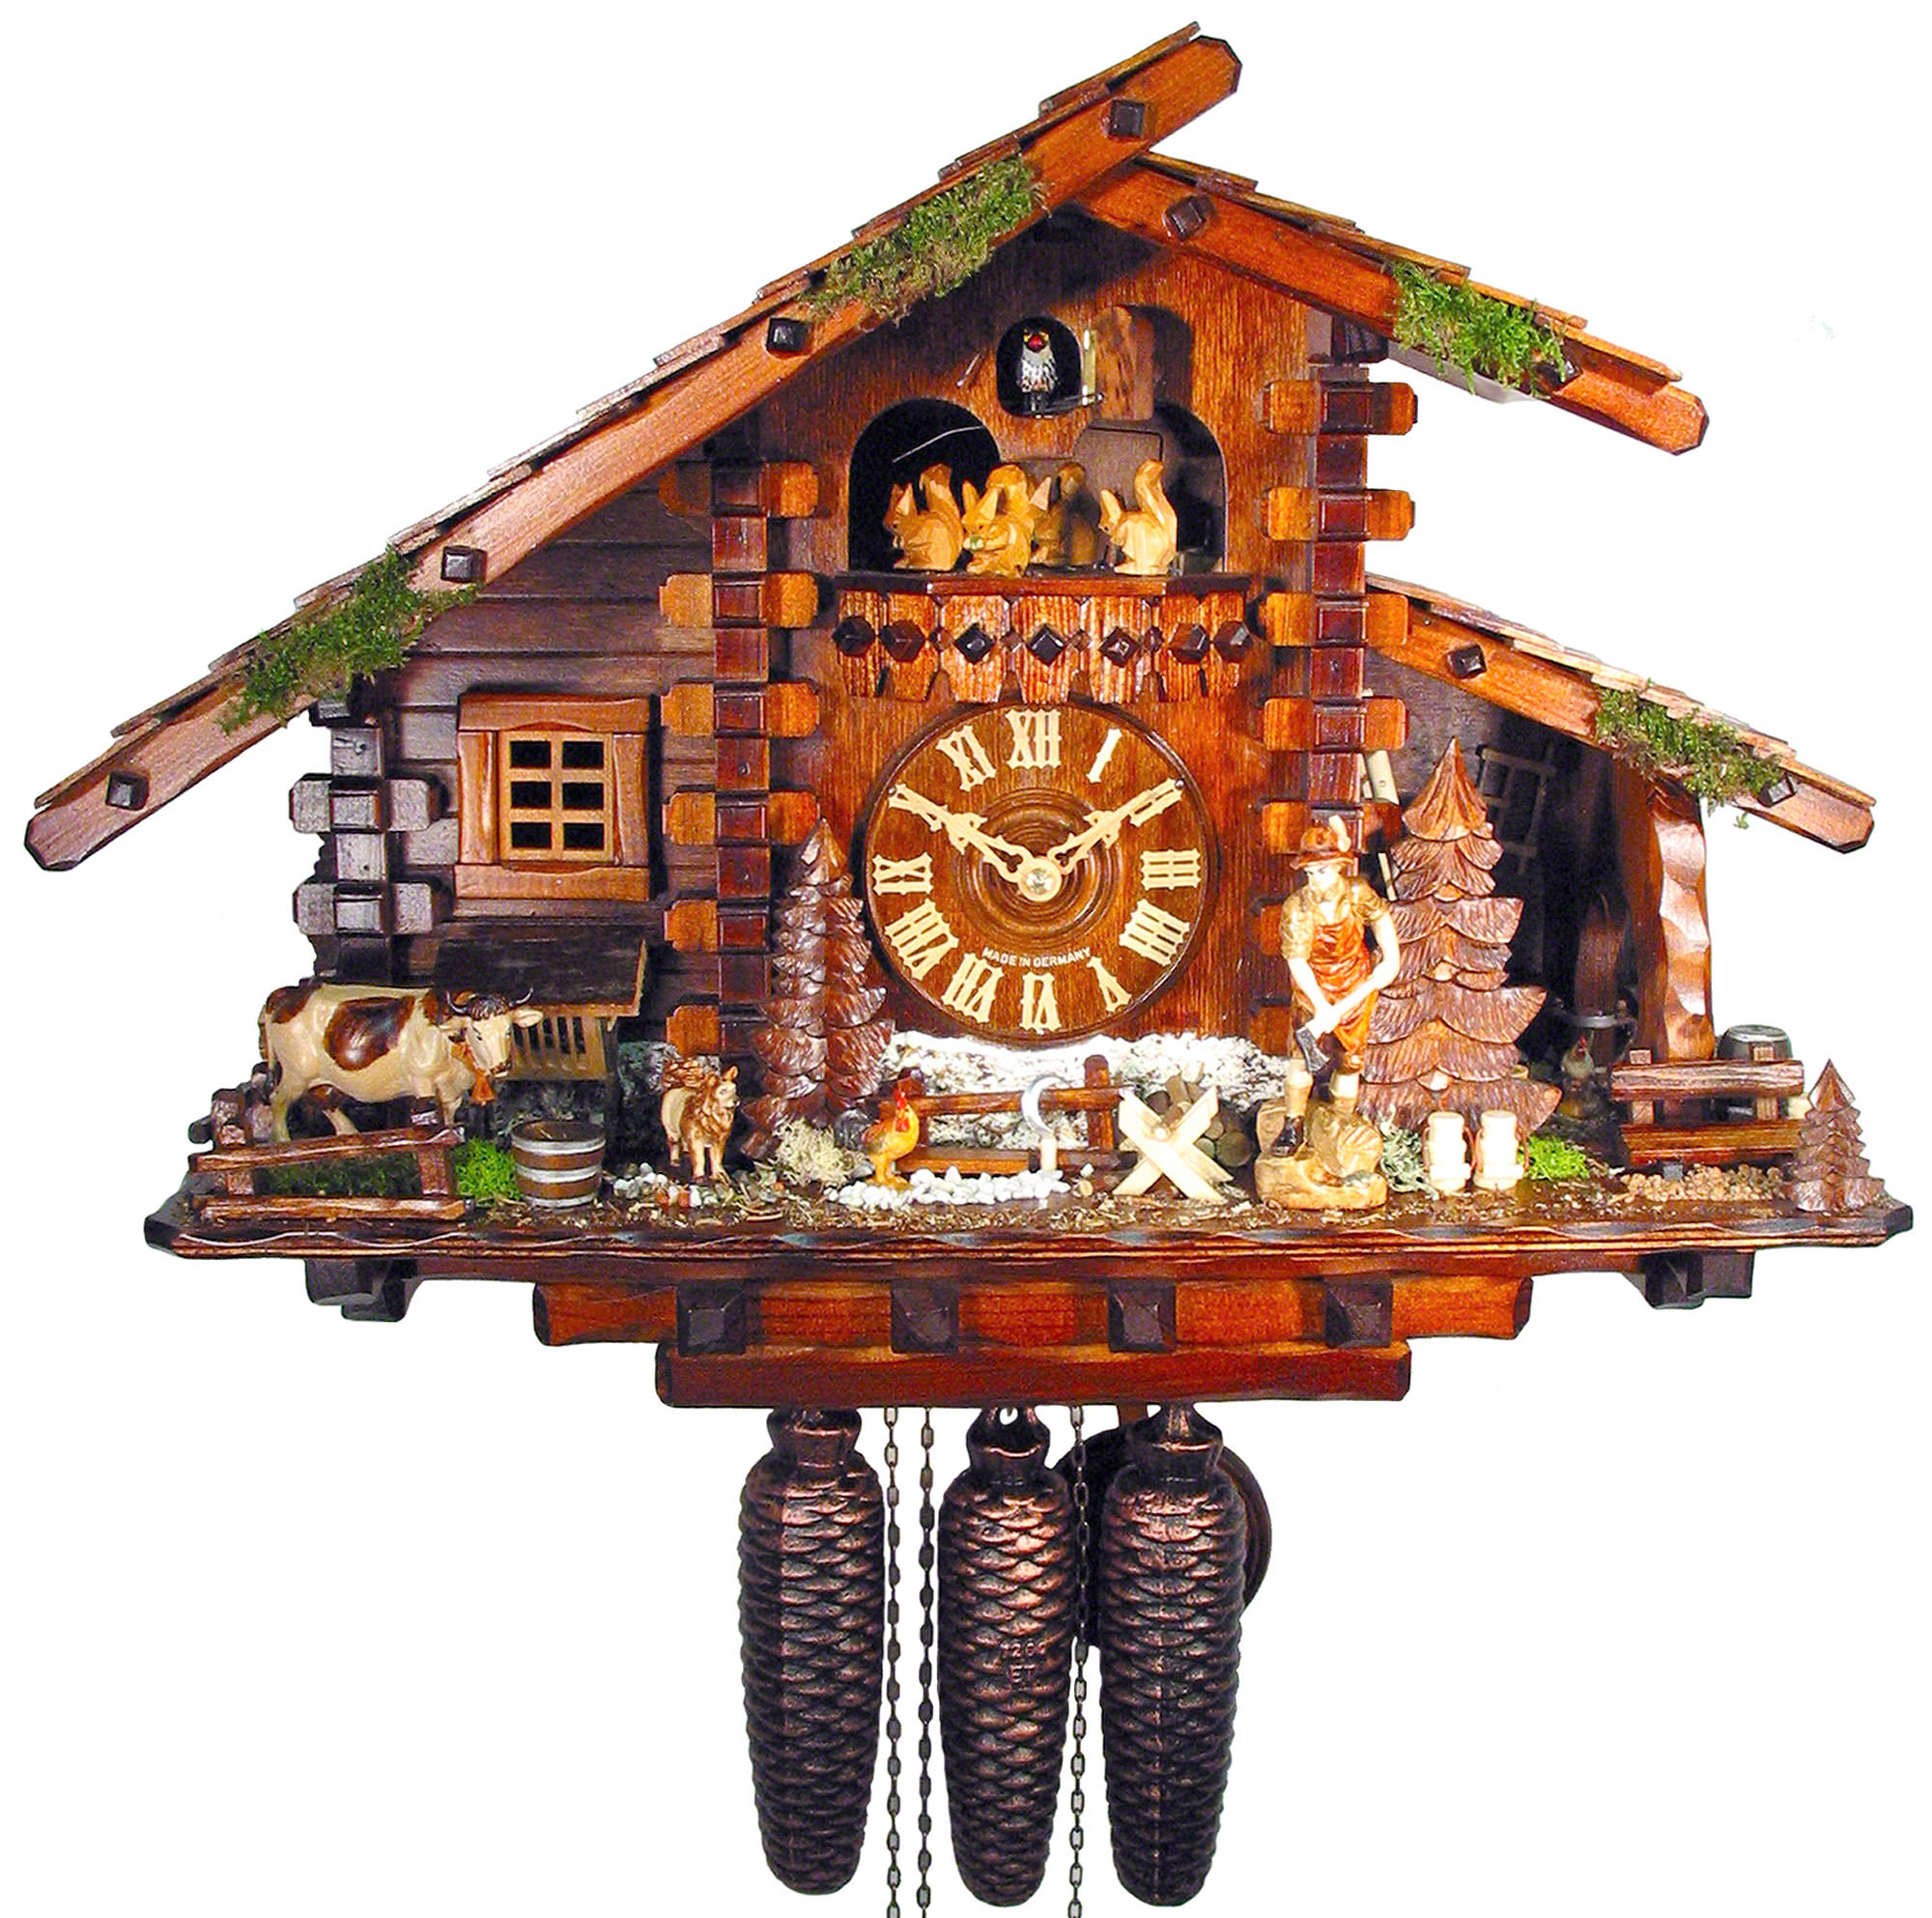 Cuckoo clock 8 day movement chalet style 36cm by august How to make a cuckoo clock